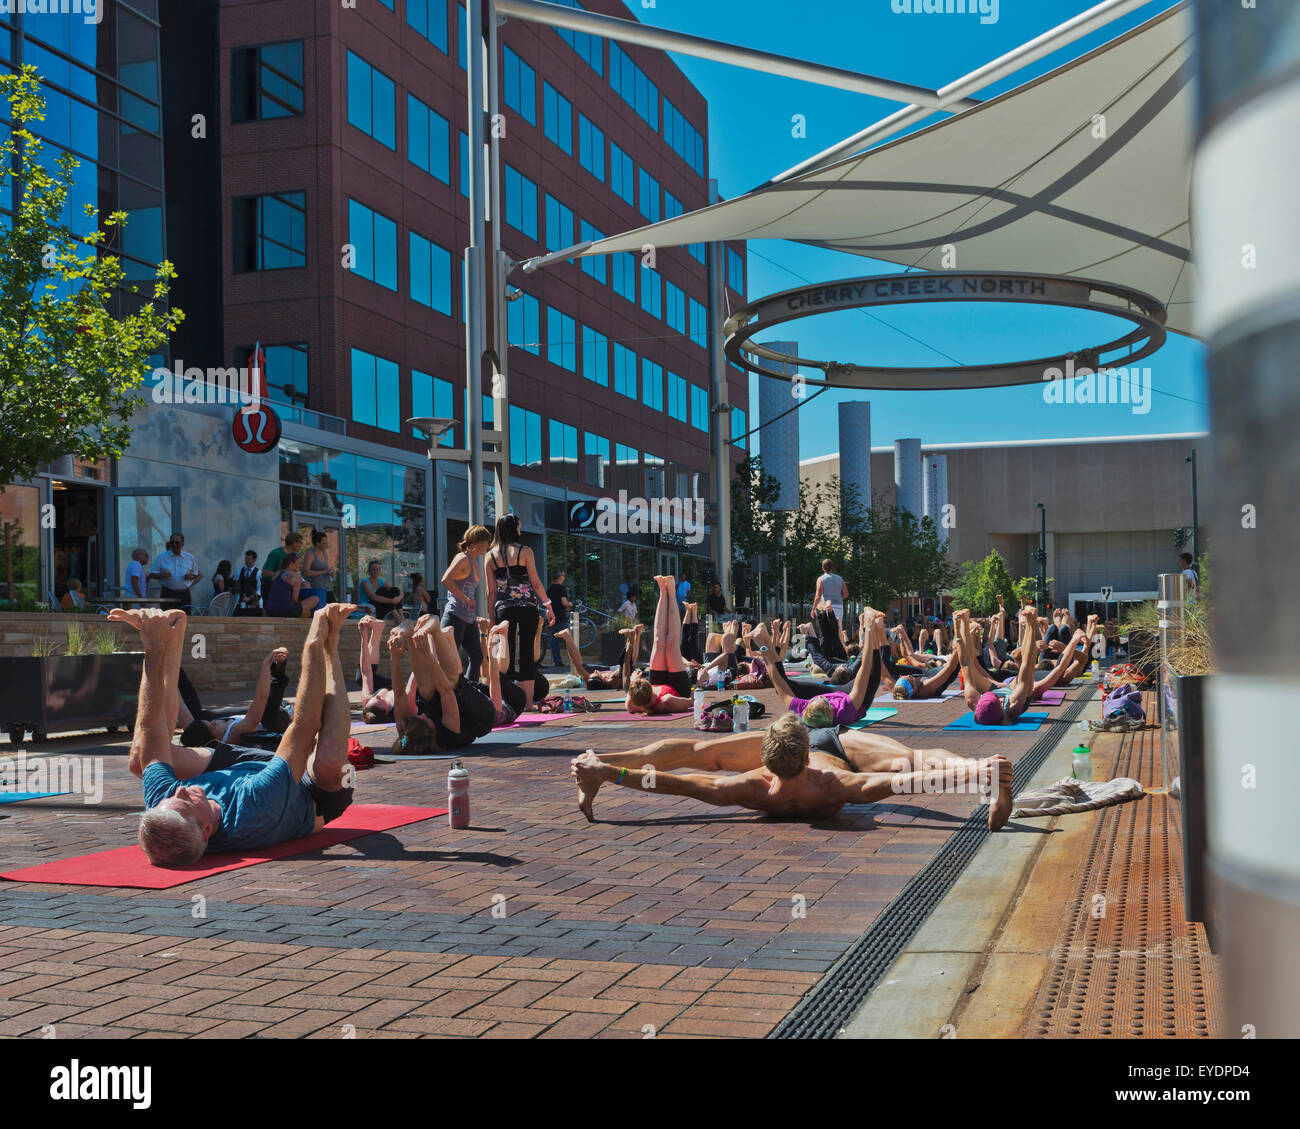 Denver Class High Resolution Stock Photography And Images Alamy